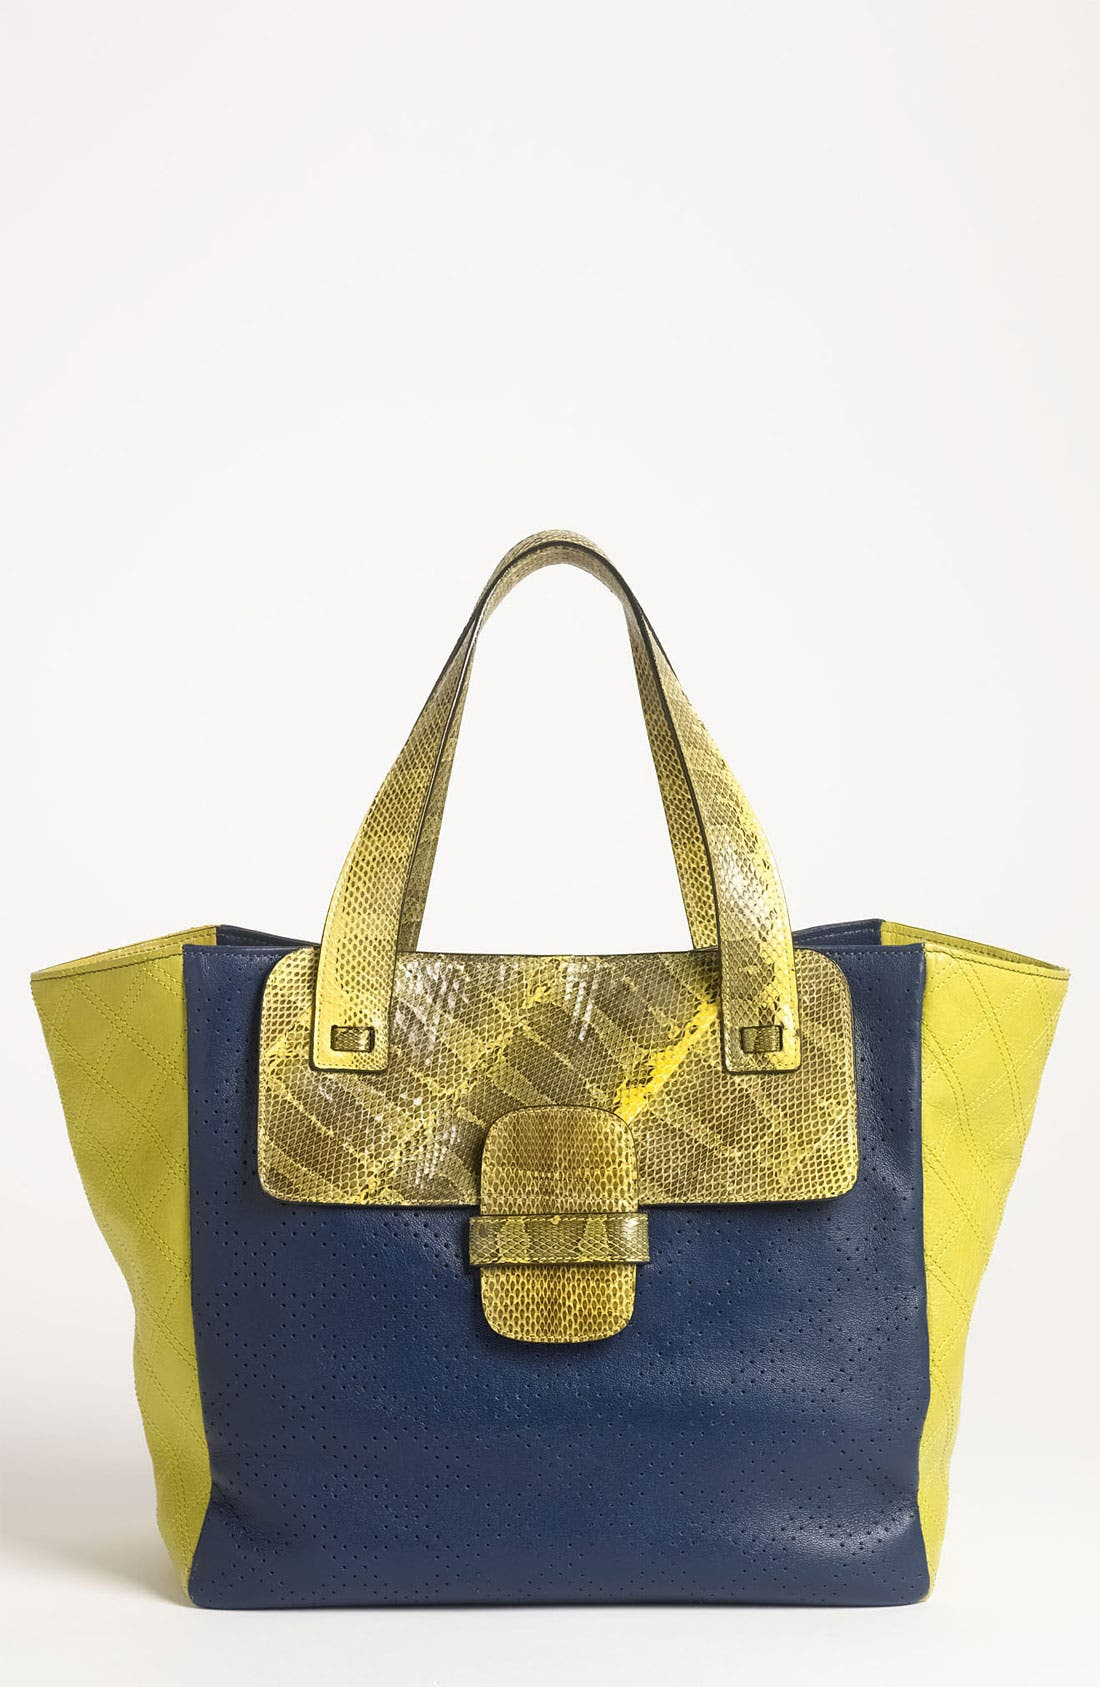 Alternate Image 1 Selected - MARC JACOBS 'Small Khaki' Perforated Tote with Genuine Snakeskin Trim